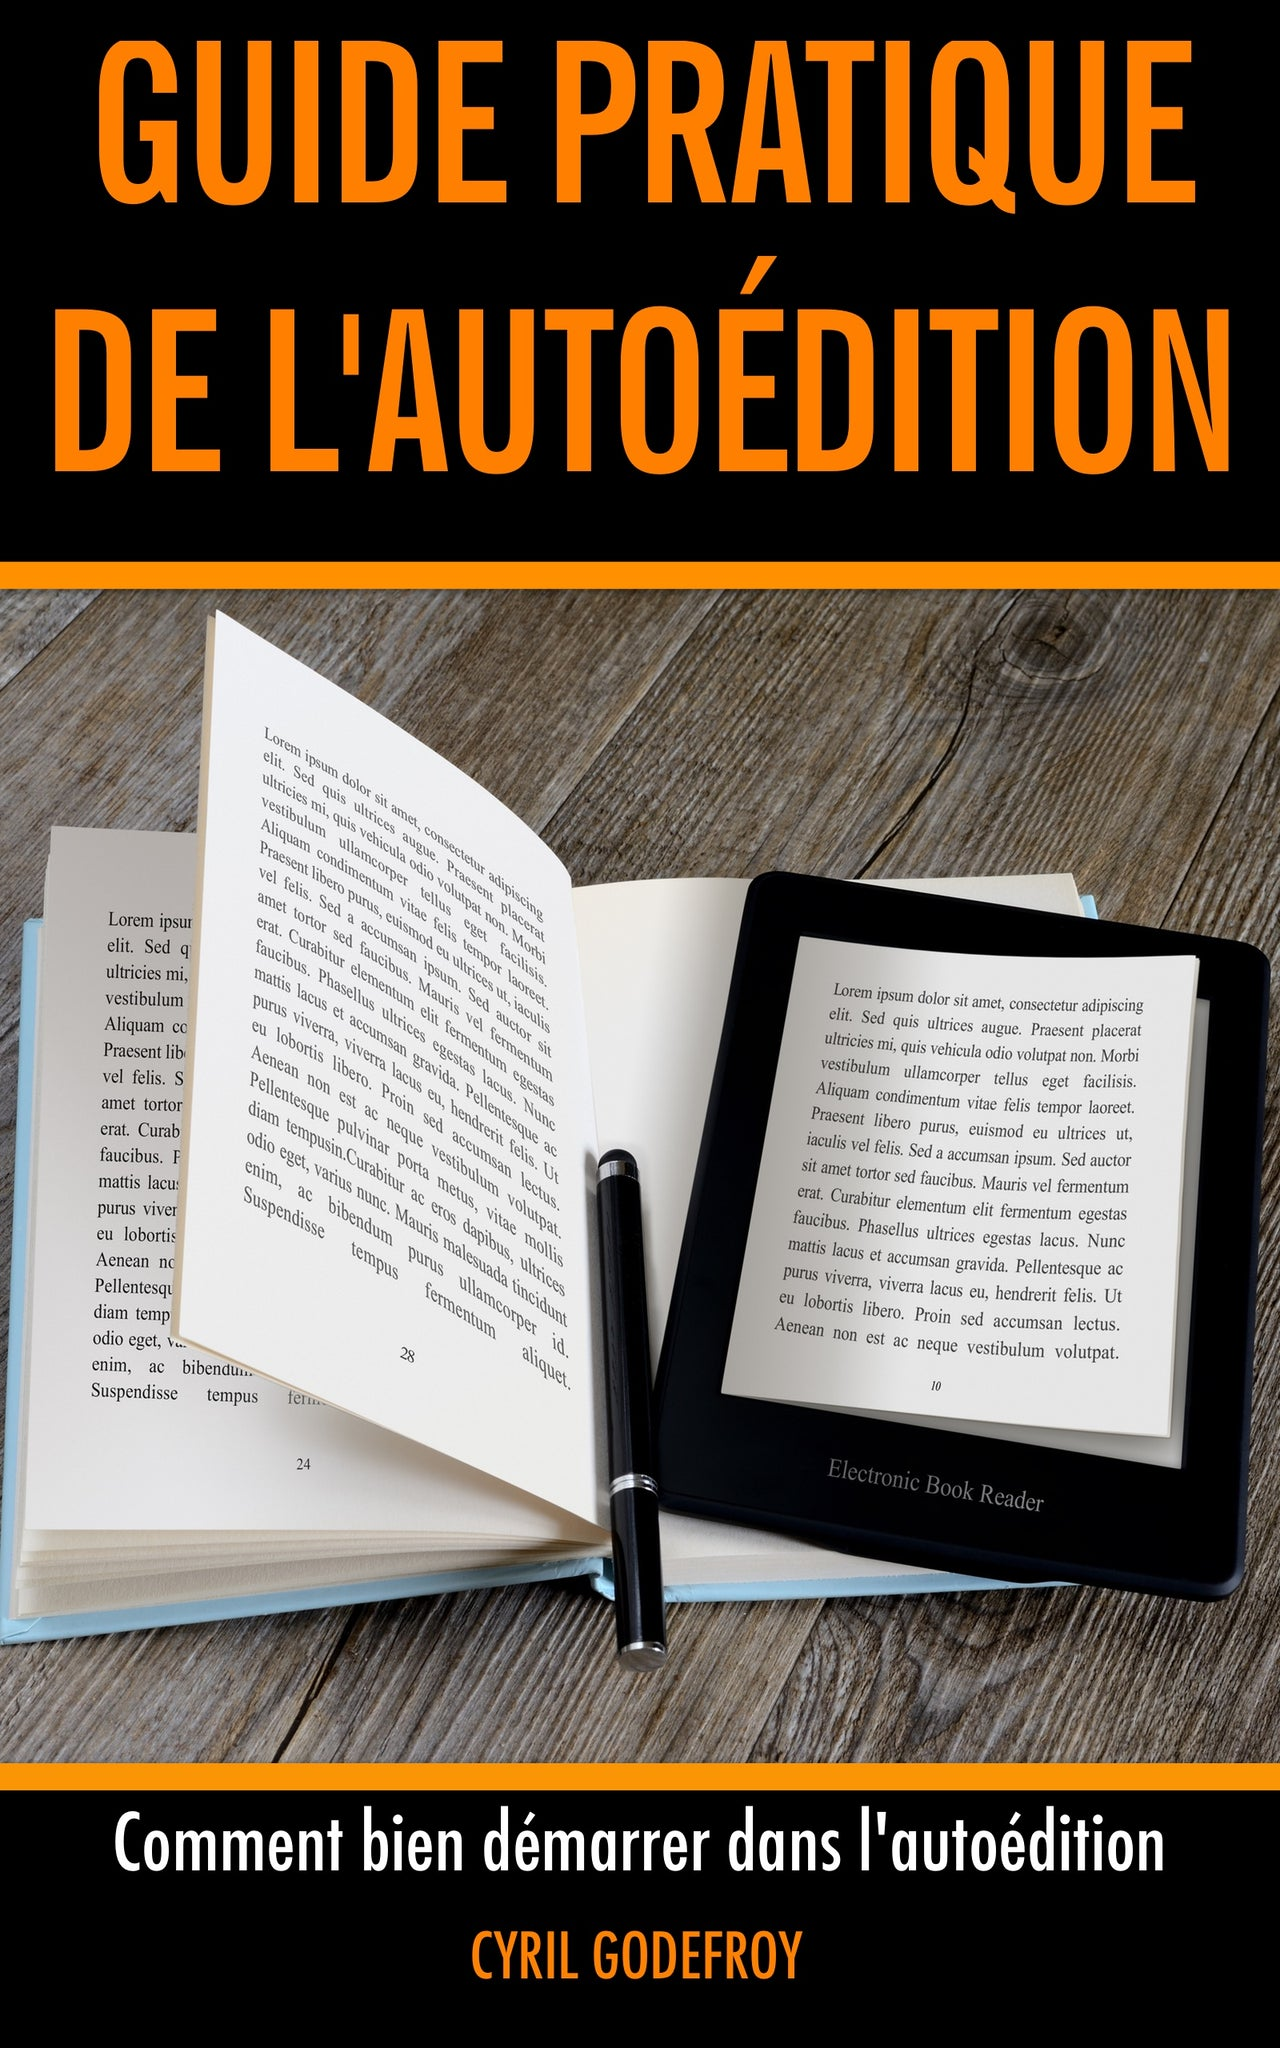 Guide pratique de l'autoédition - ebook